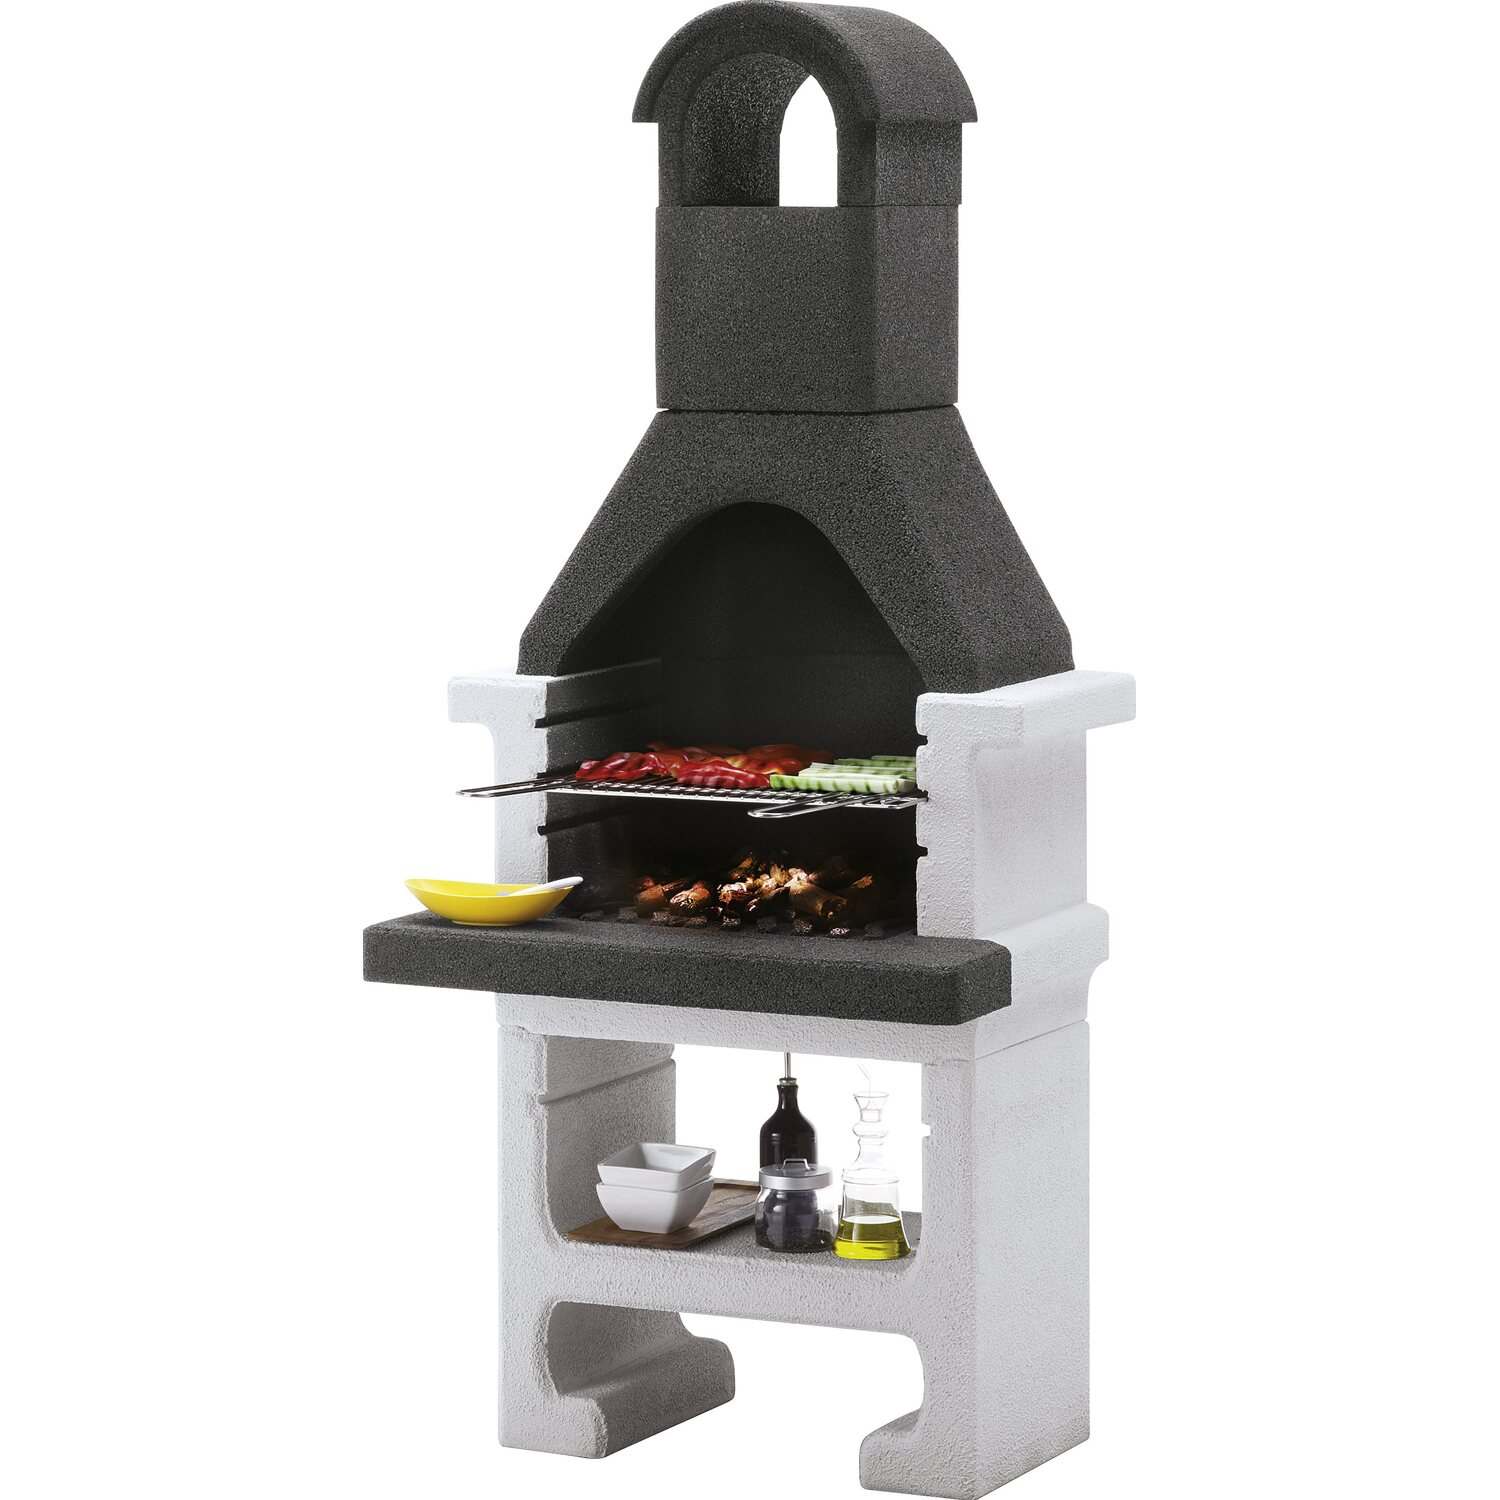 easy garden barbecue in muratura aral acquista da obi